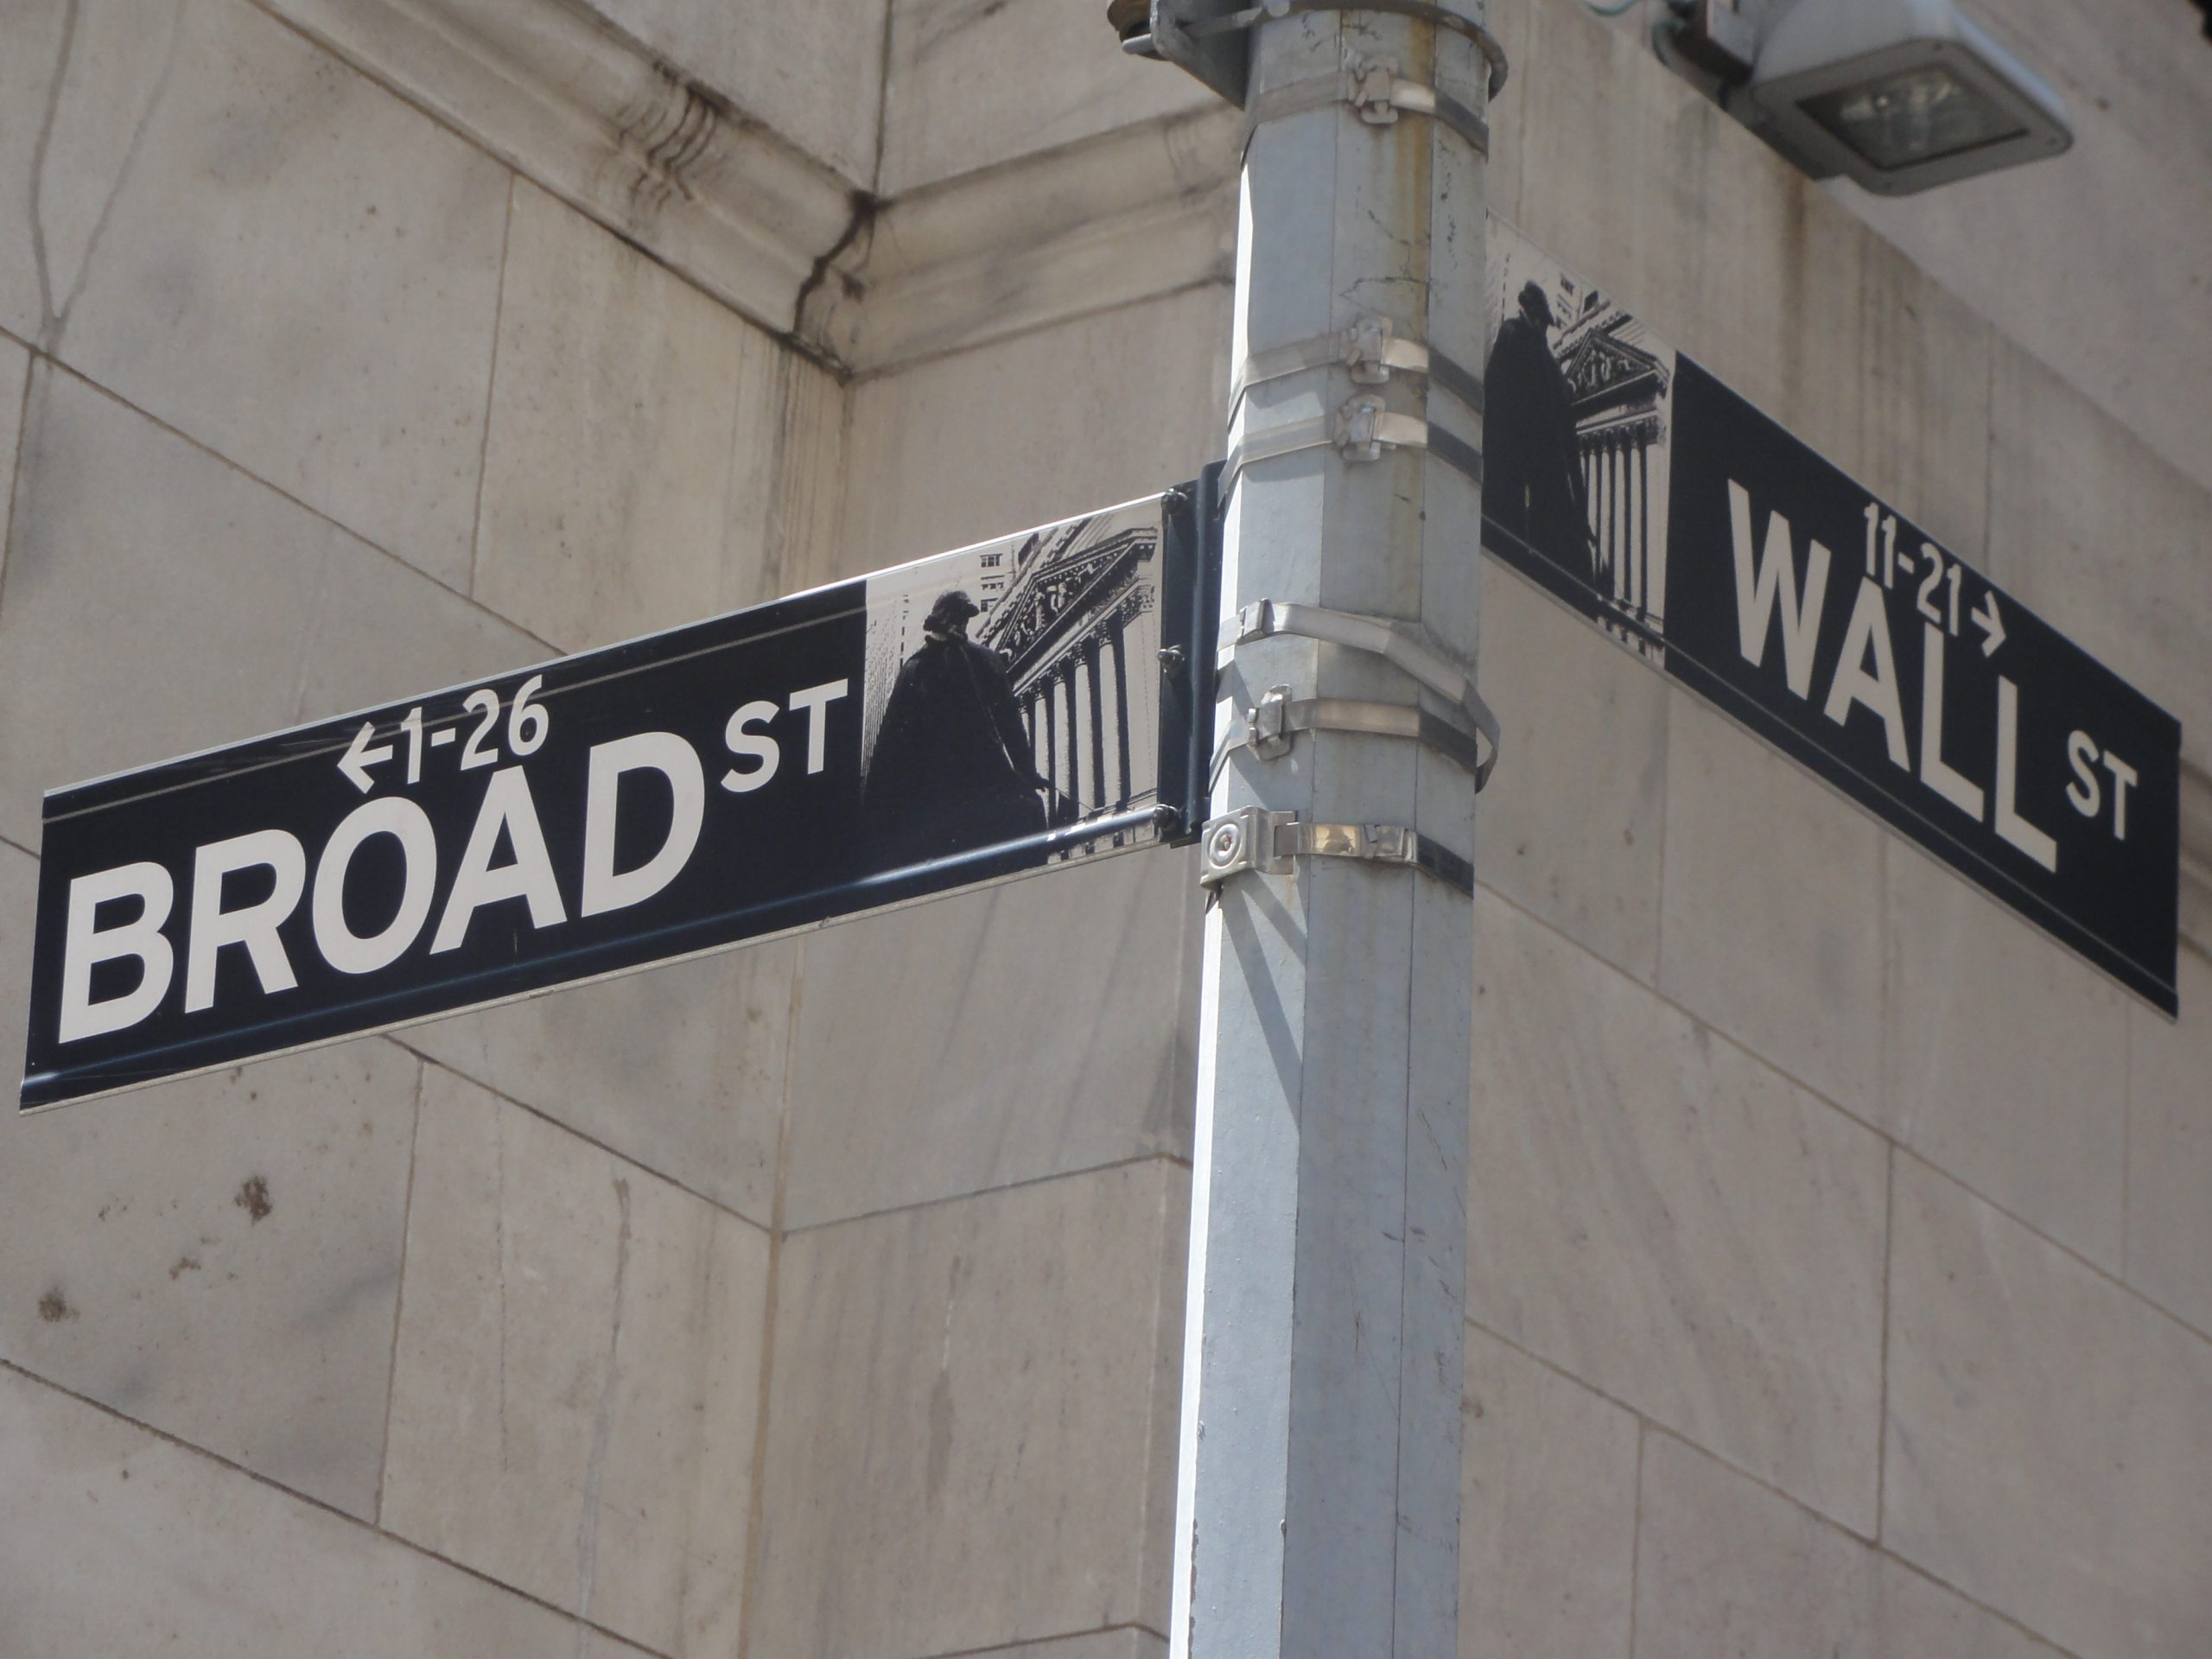 Broad Street sign, New York City